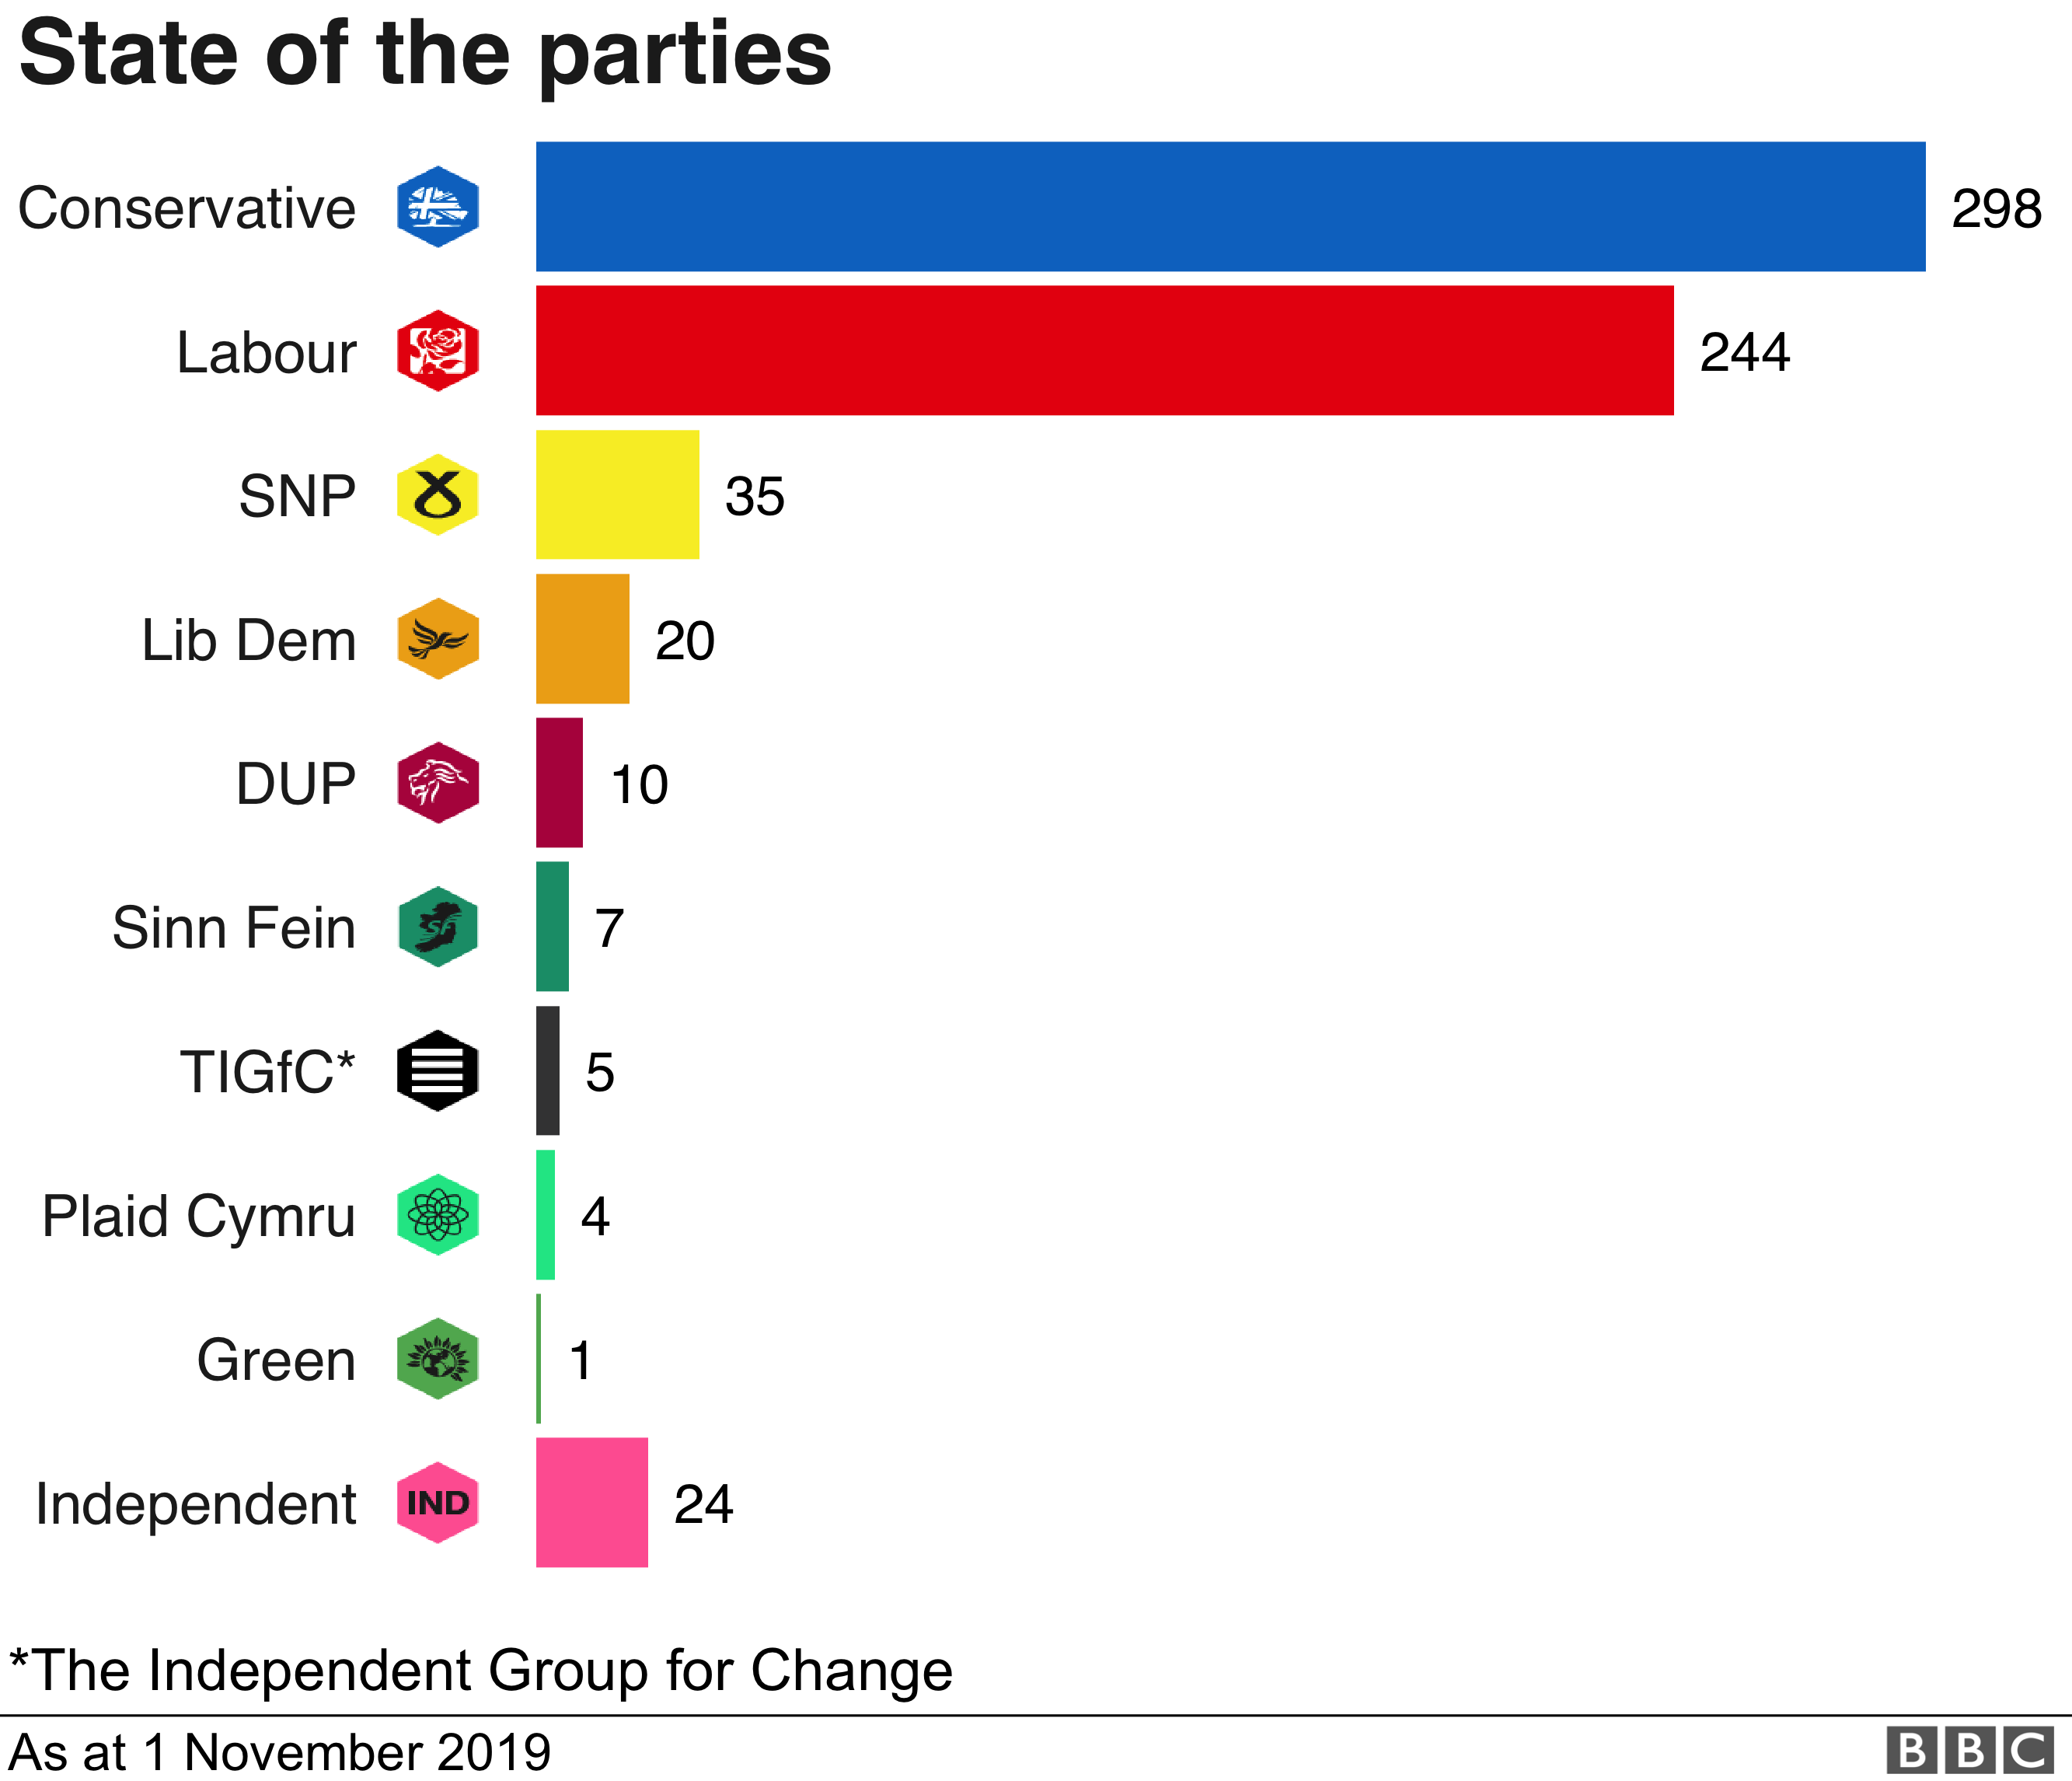 Chart showing the state of the parties in Parliament